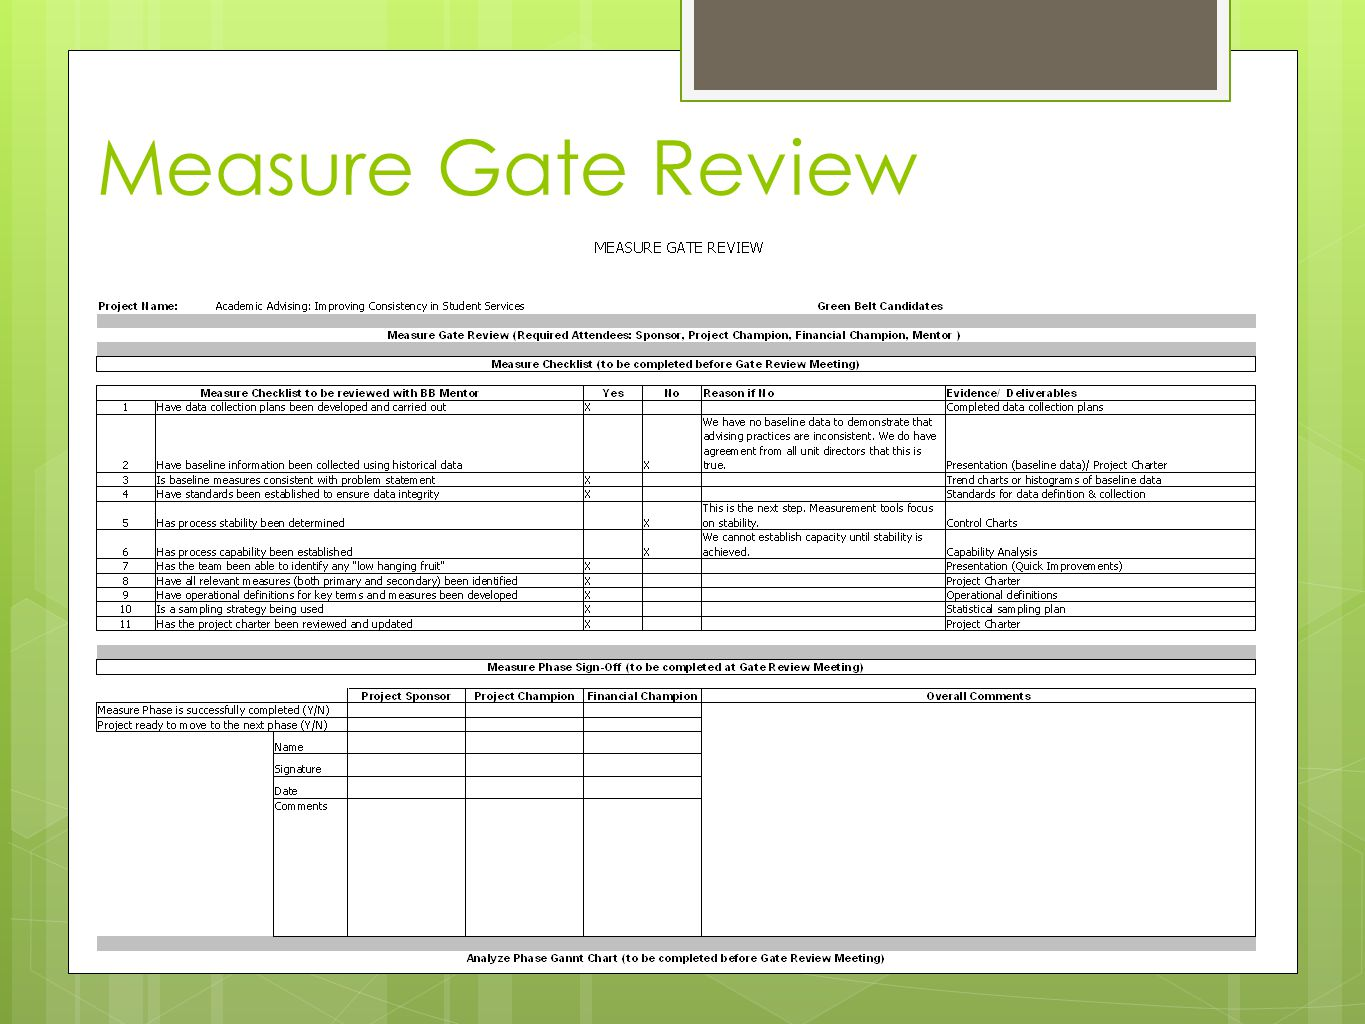 Measure Gate Review